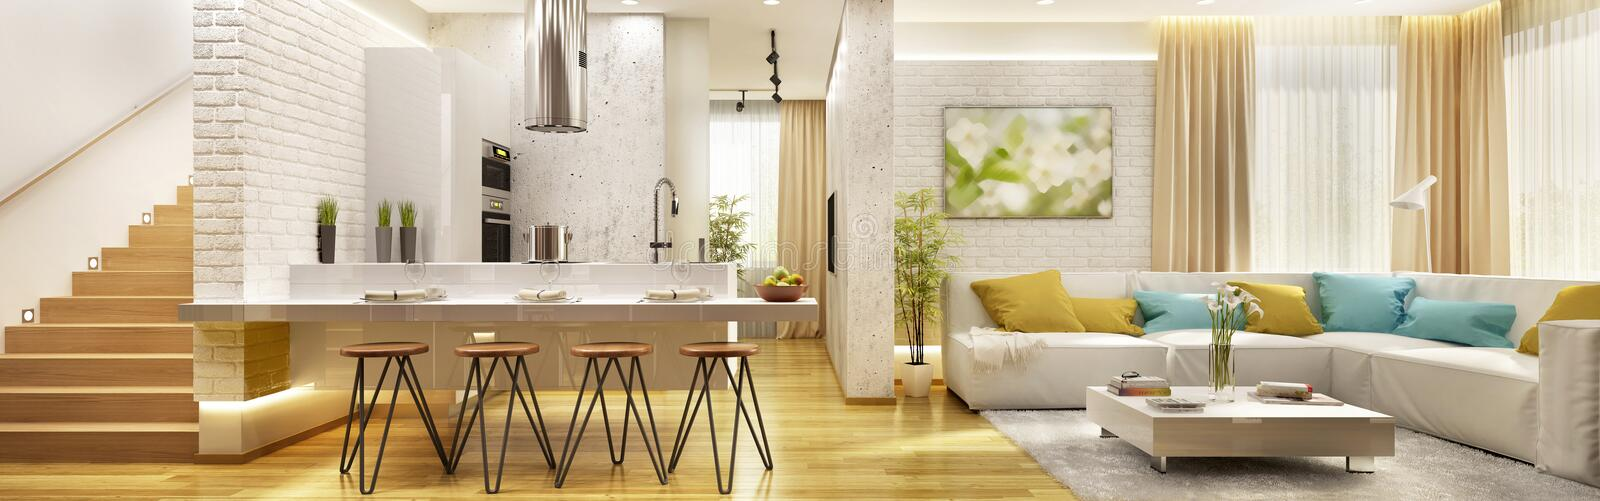 Living room with modern kitchen in big house royalty free stock image